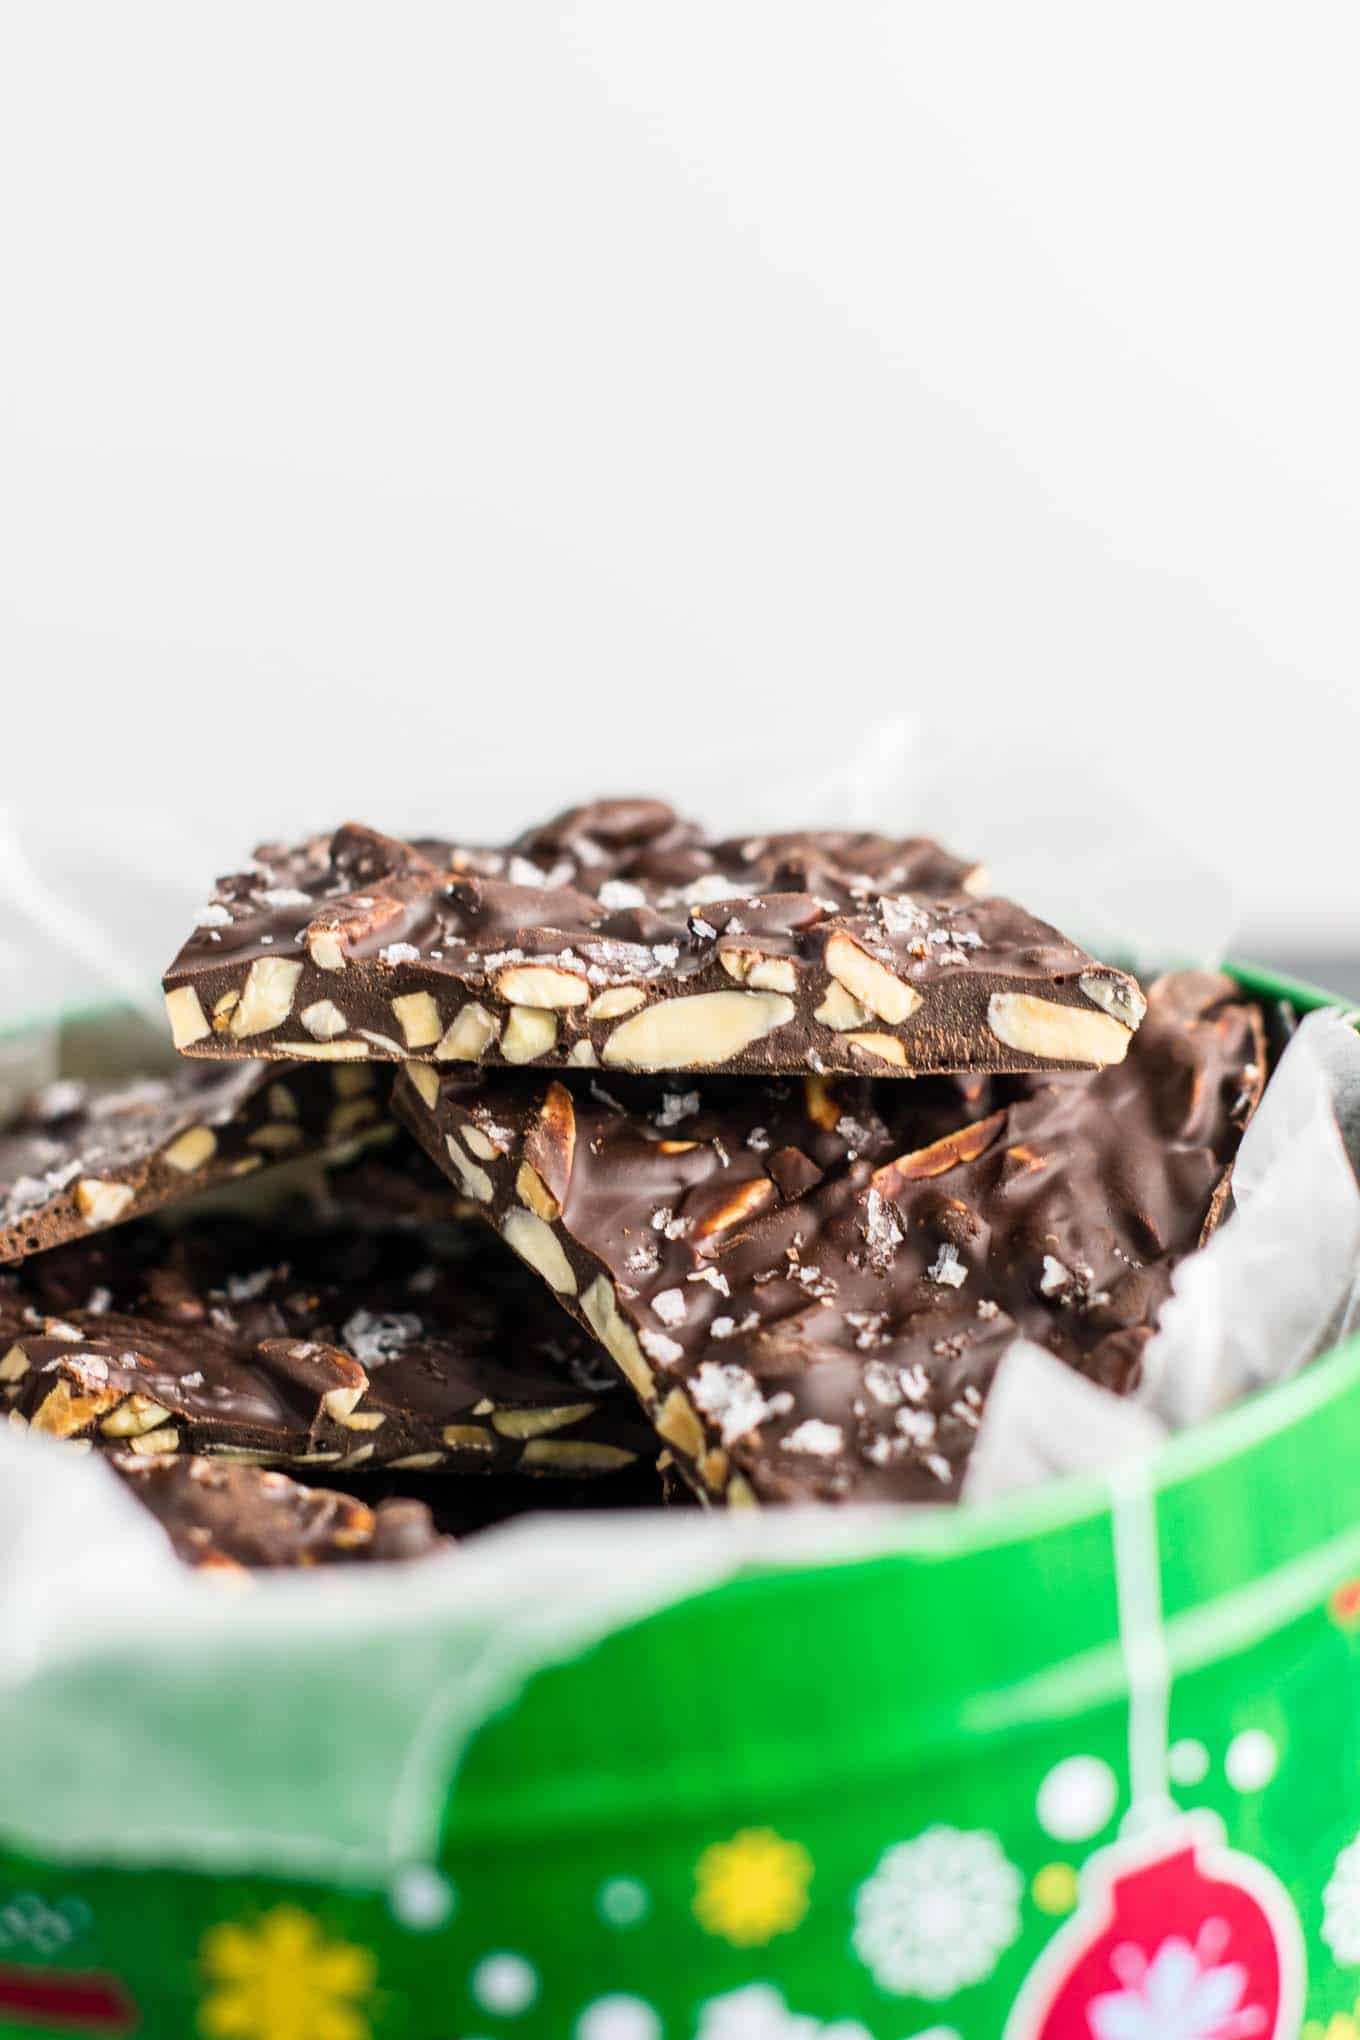 Chocolate Almond bark with sea salt. A seriously addictive + easy to make dessert! (just 5 ingredients!) #vegan #almondbark #desserts #christmas #darkchocolate #healthy